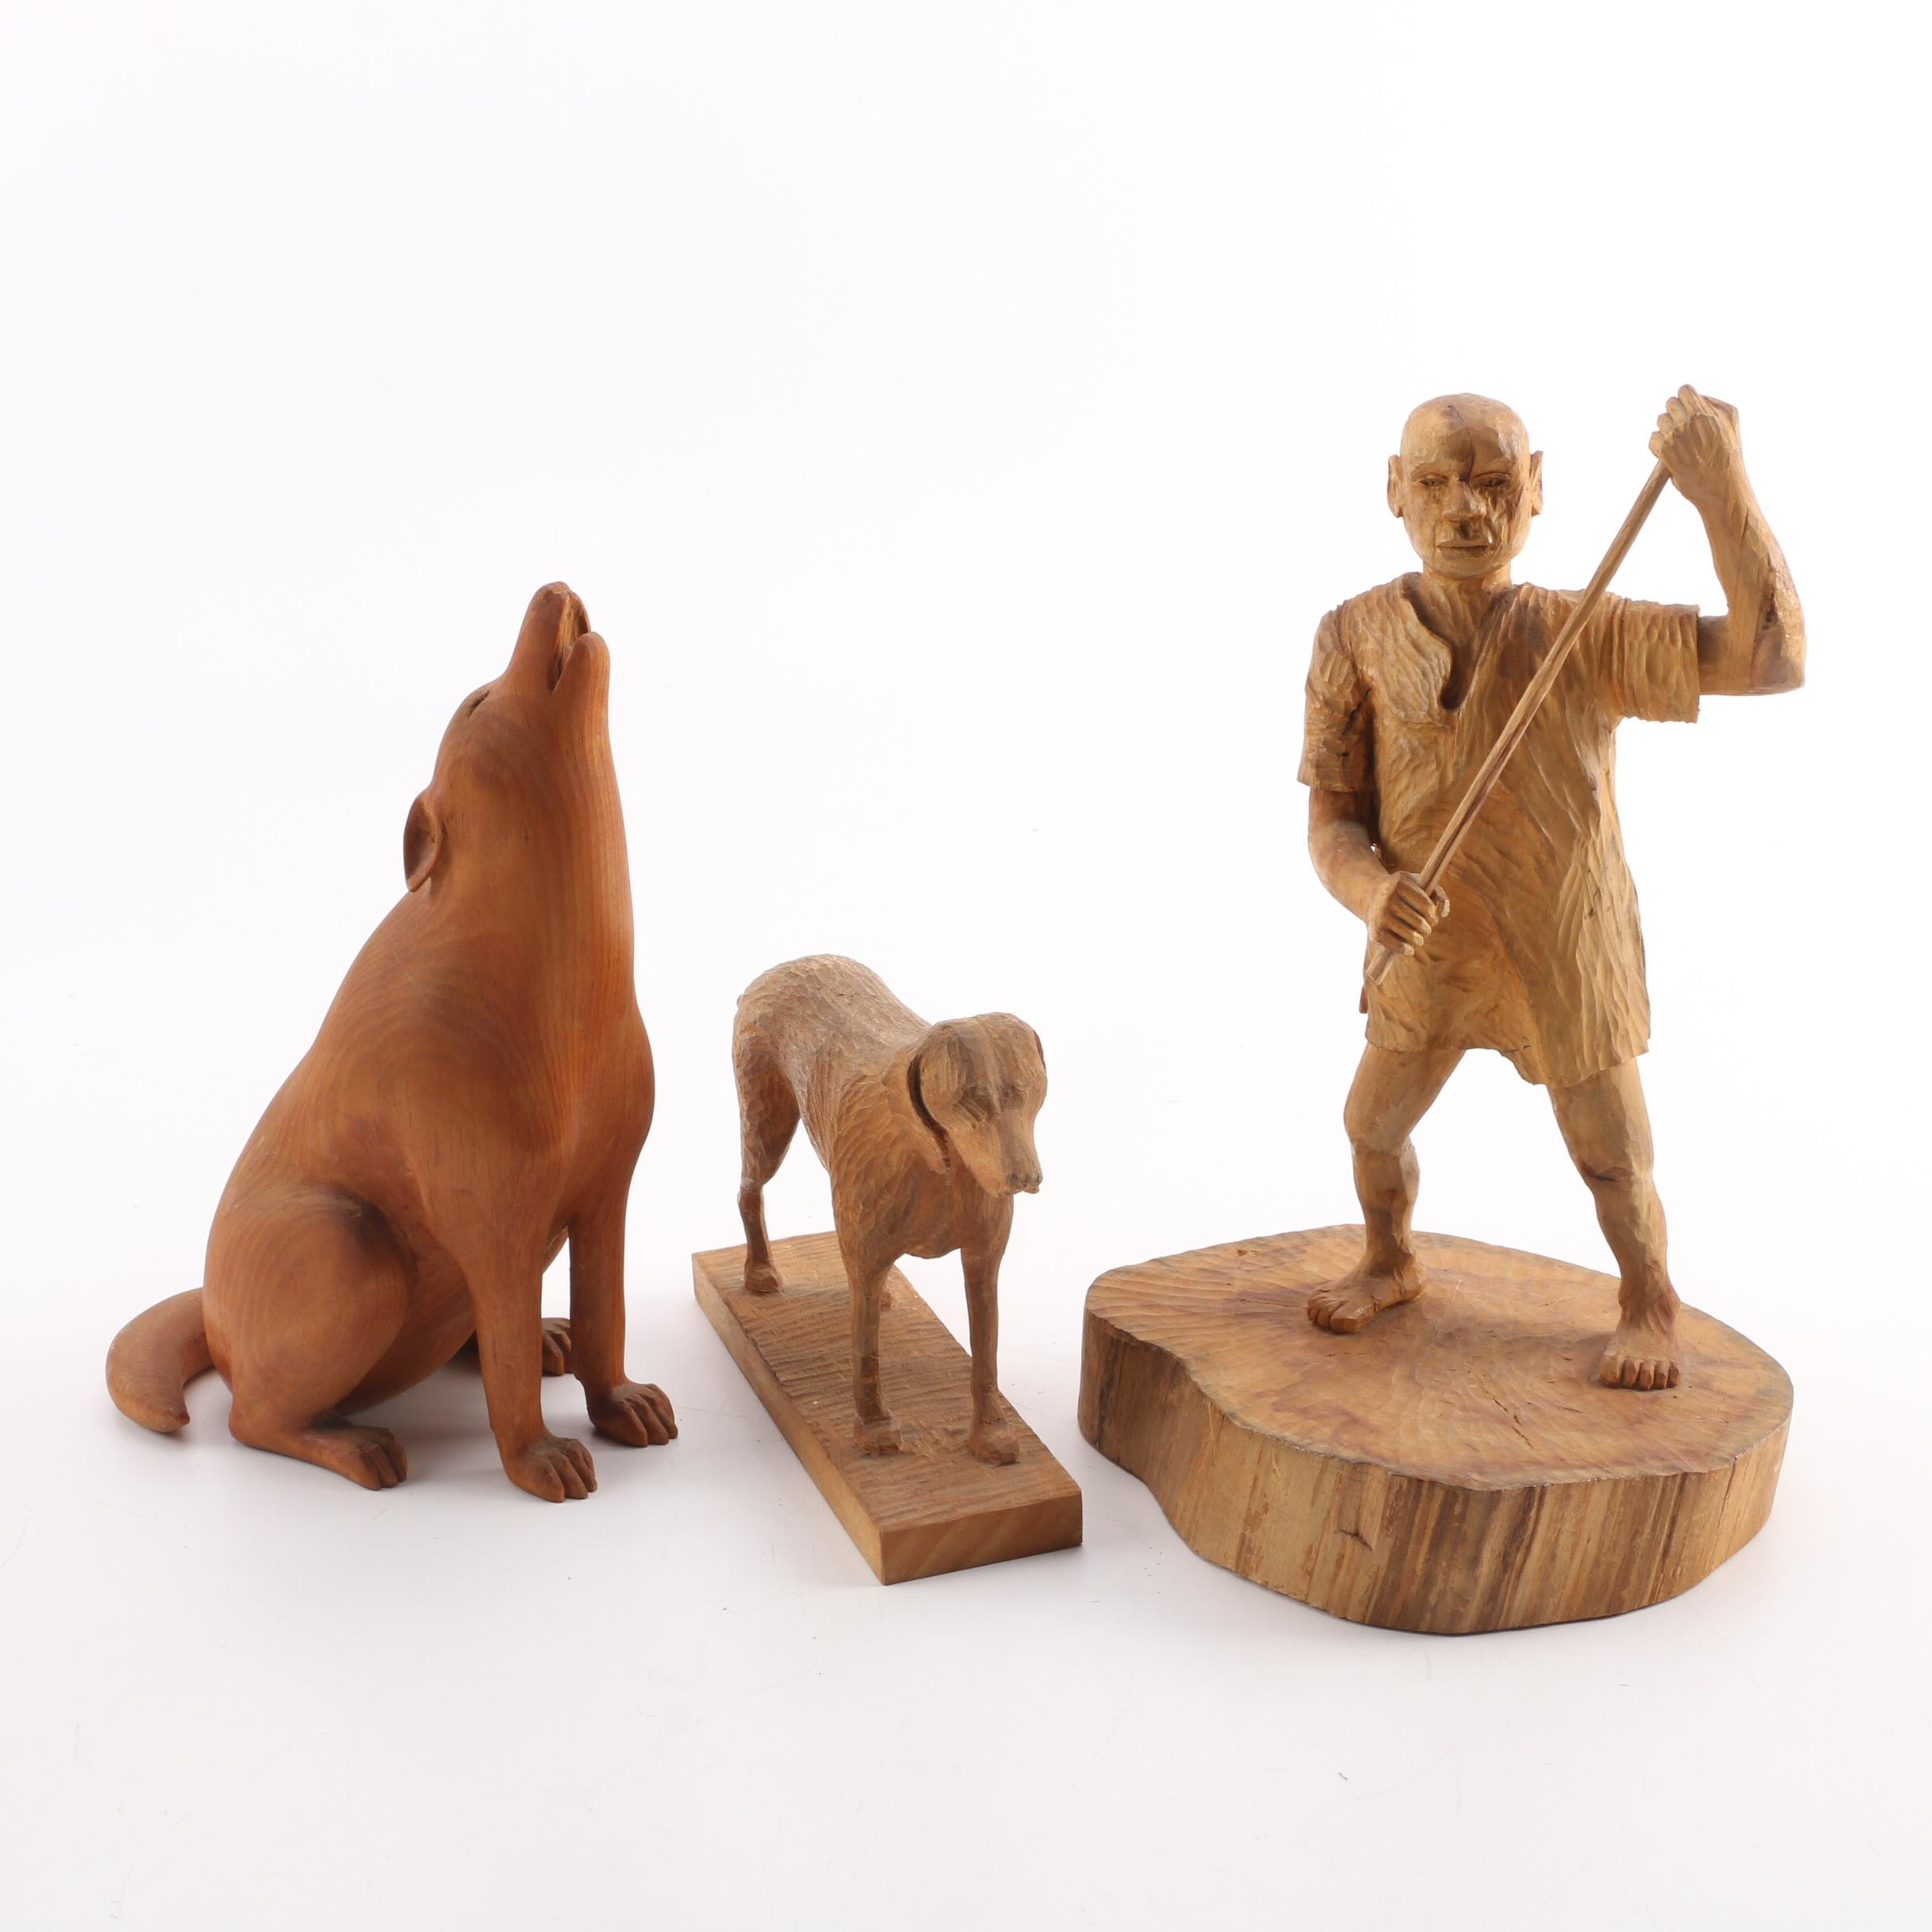 Carved Wooden Woodland Figurines